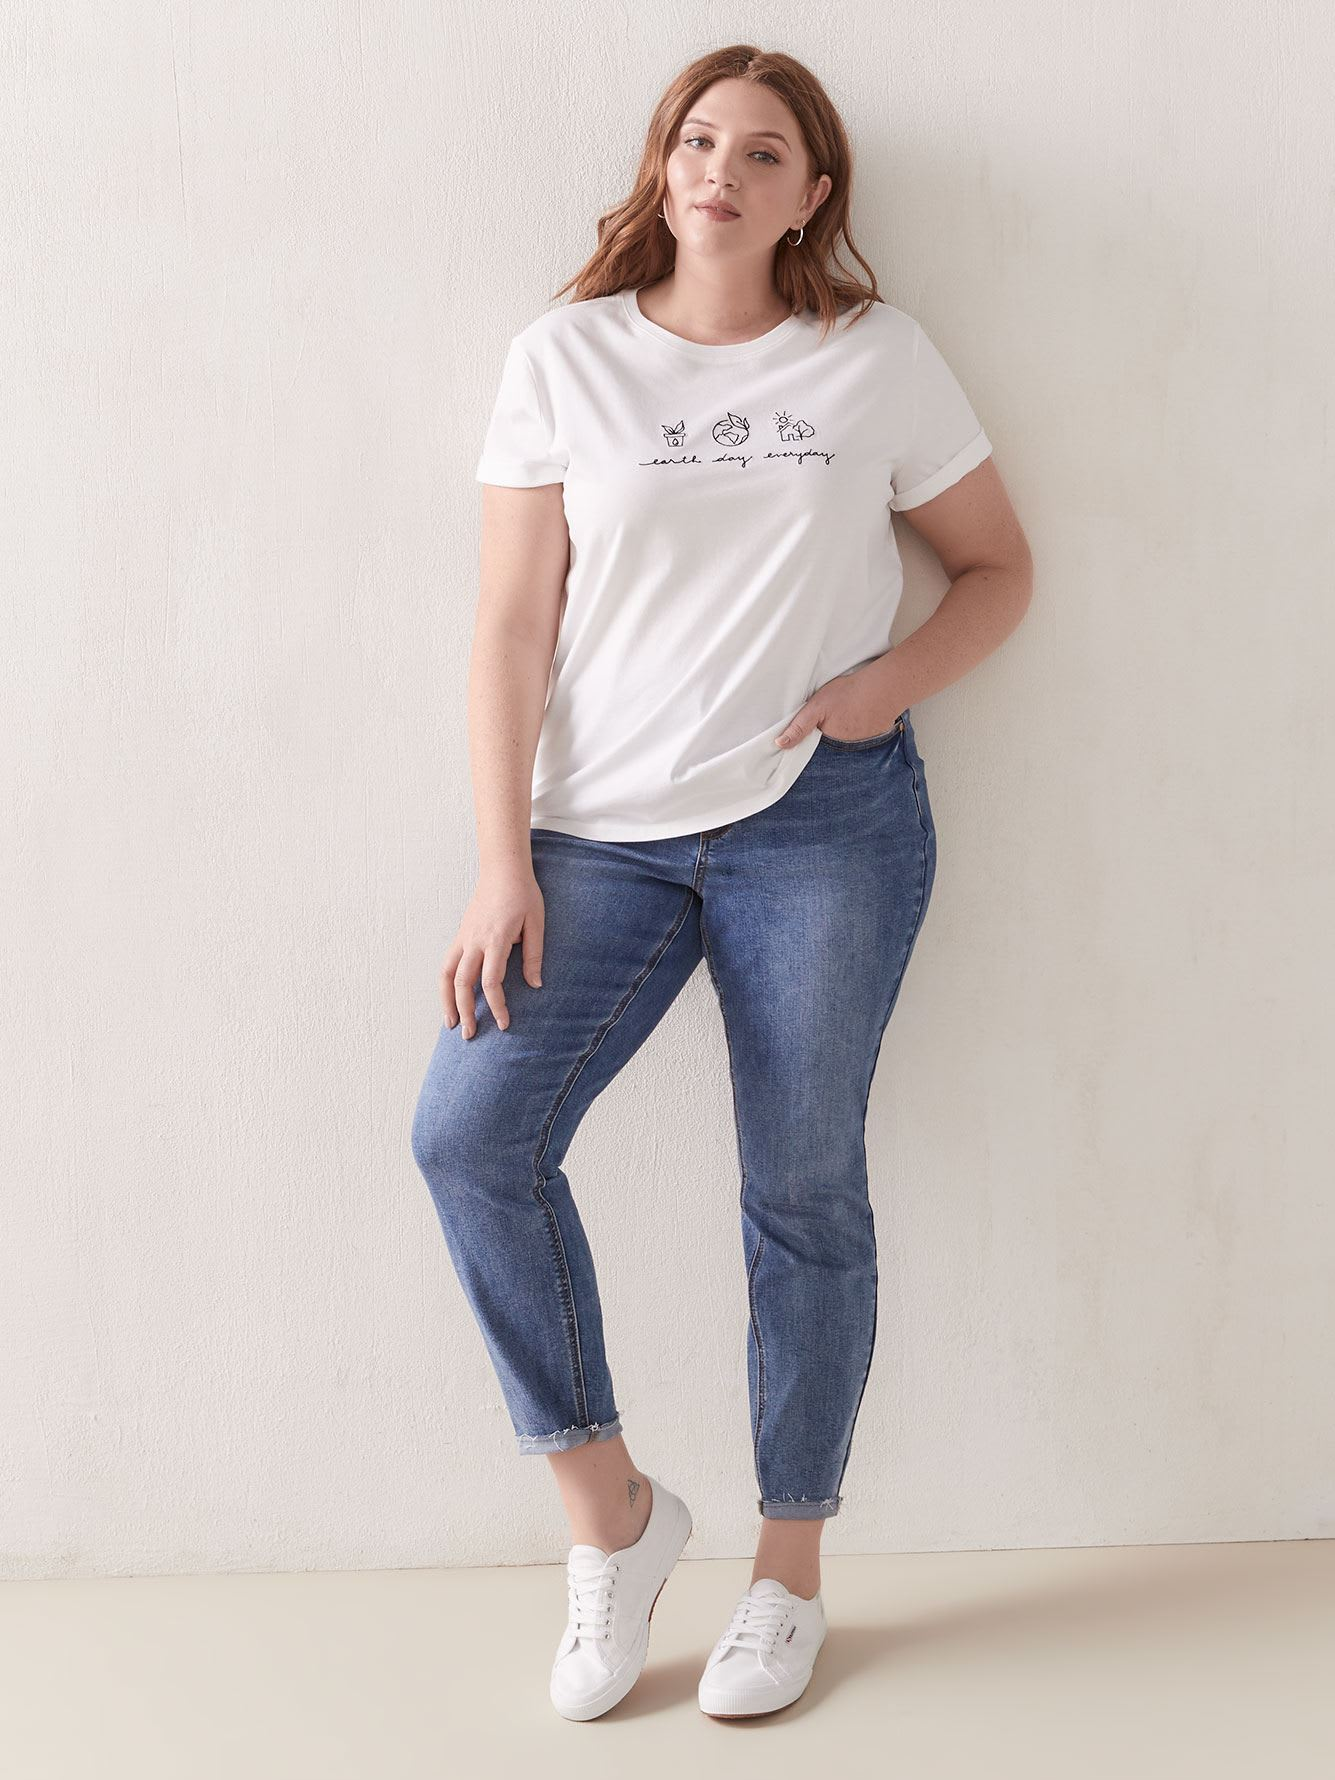 Embroidered Earth Day T-Shirt - Addition Elle